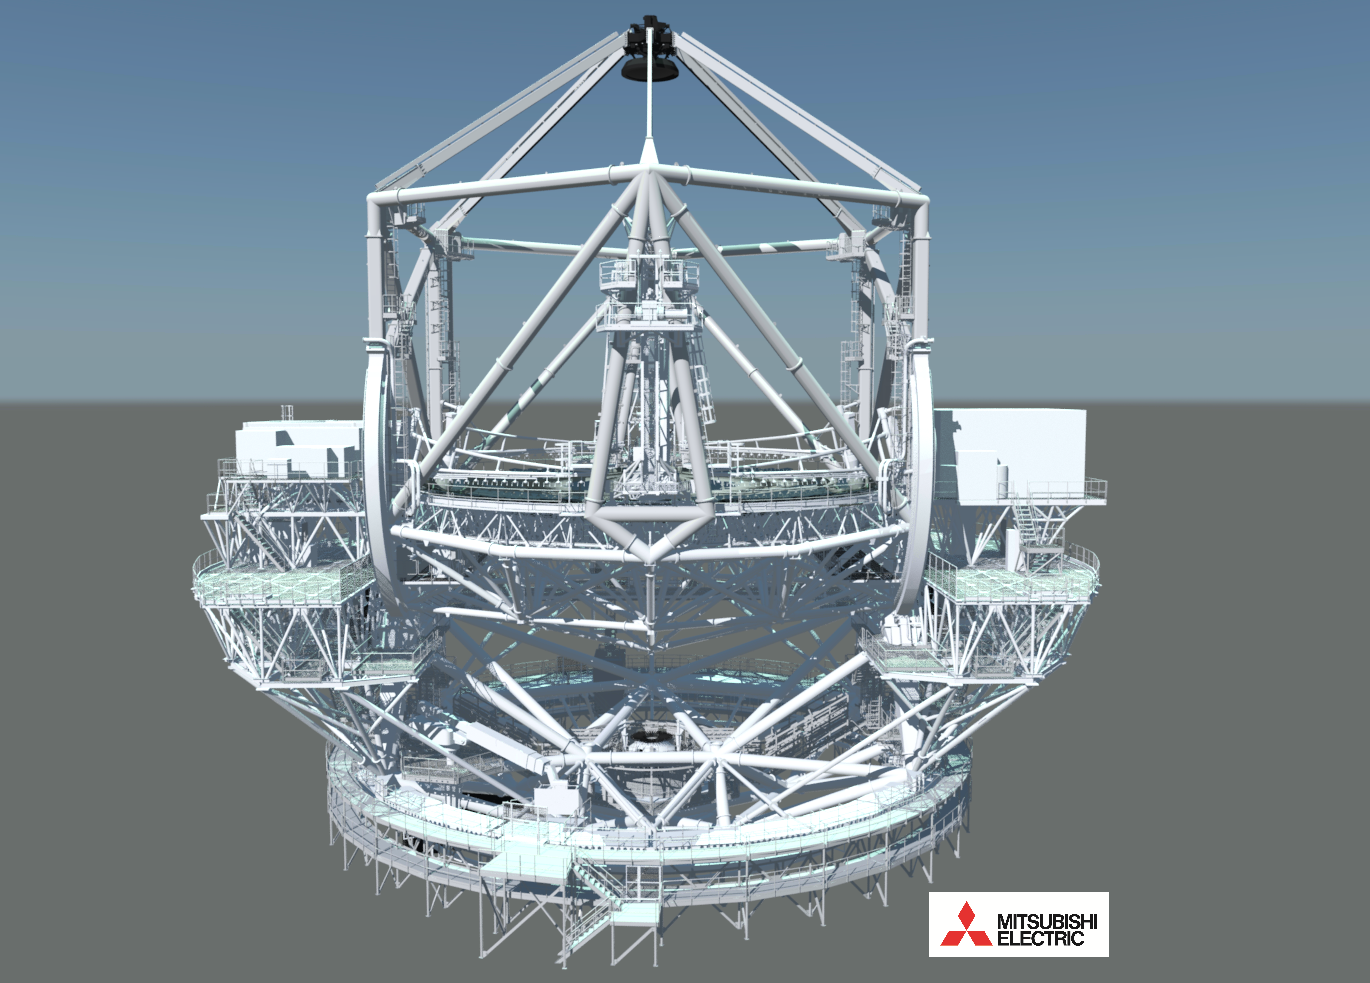 Rendering of the telescope structure design.